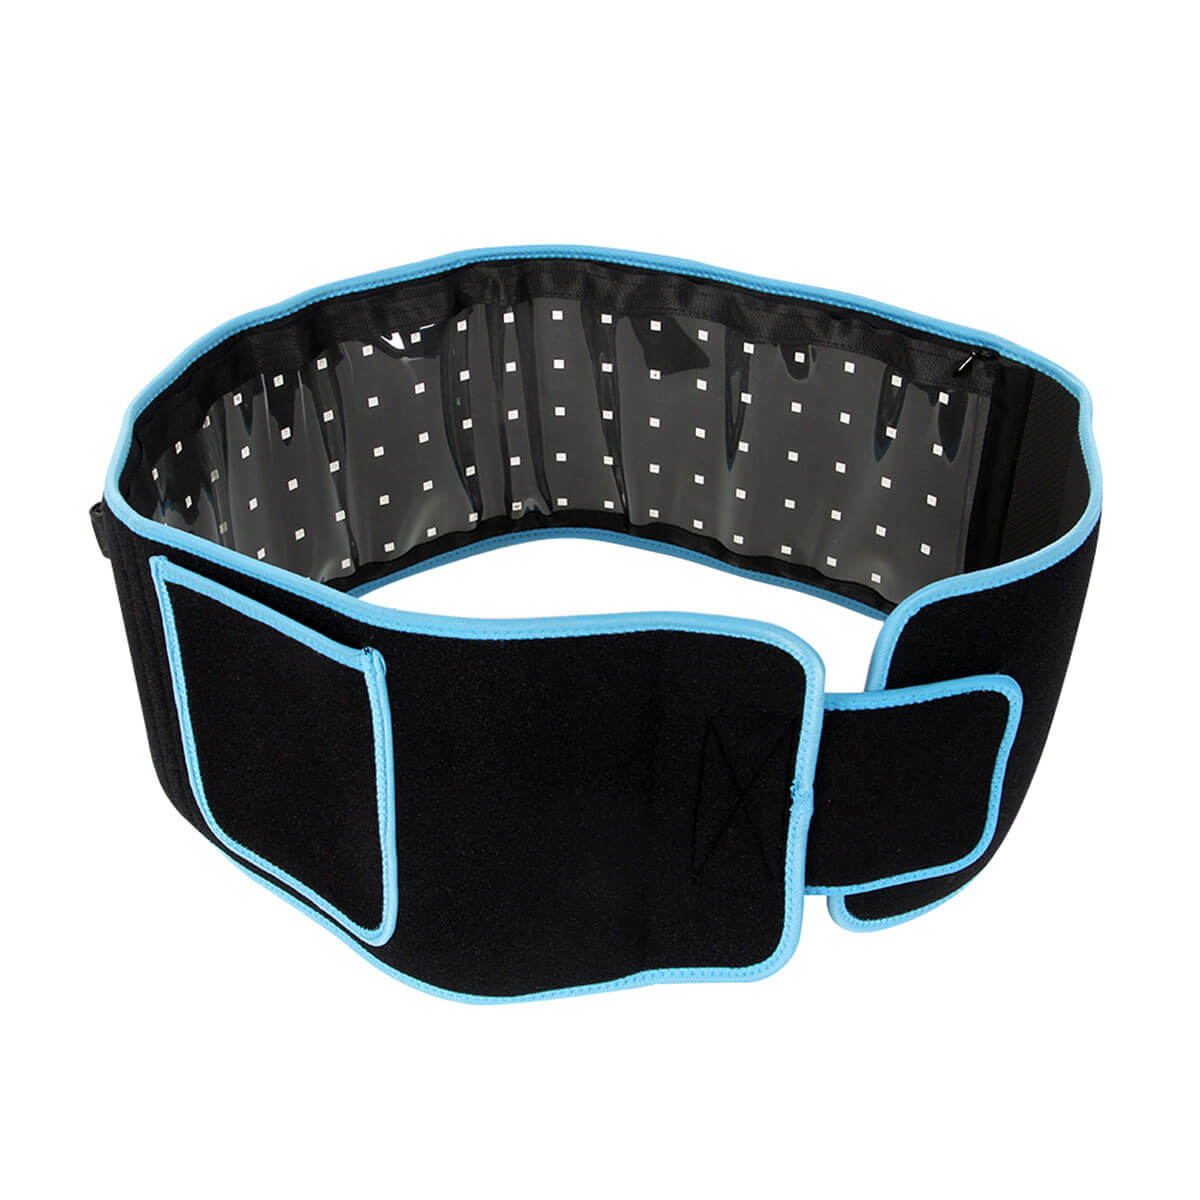 Near Infrared laser therapy belt 4